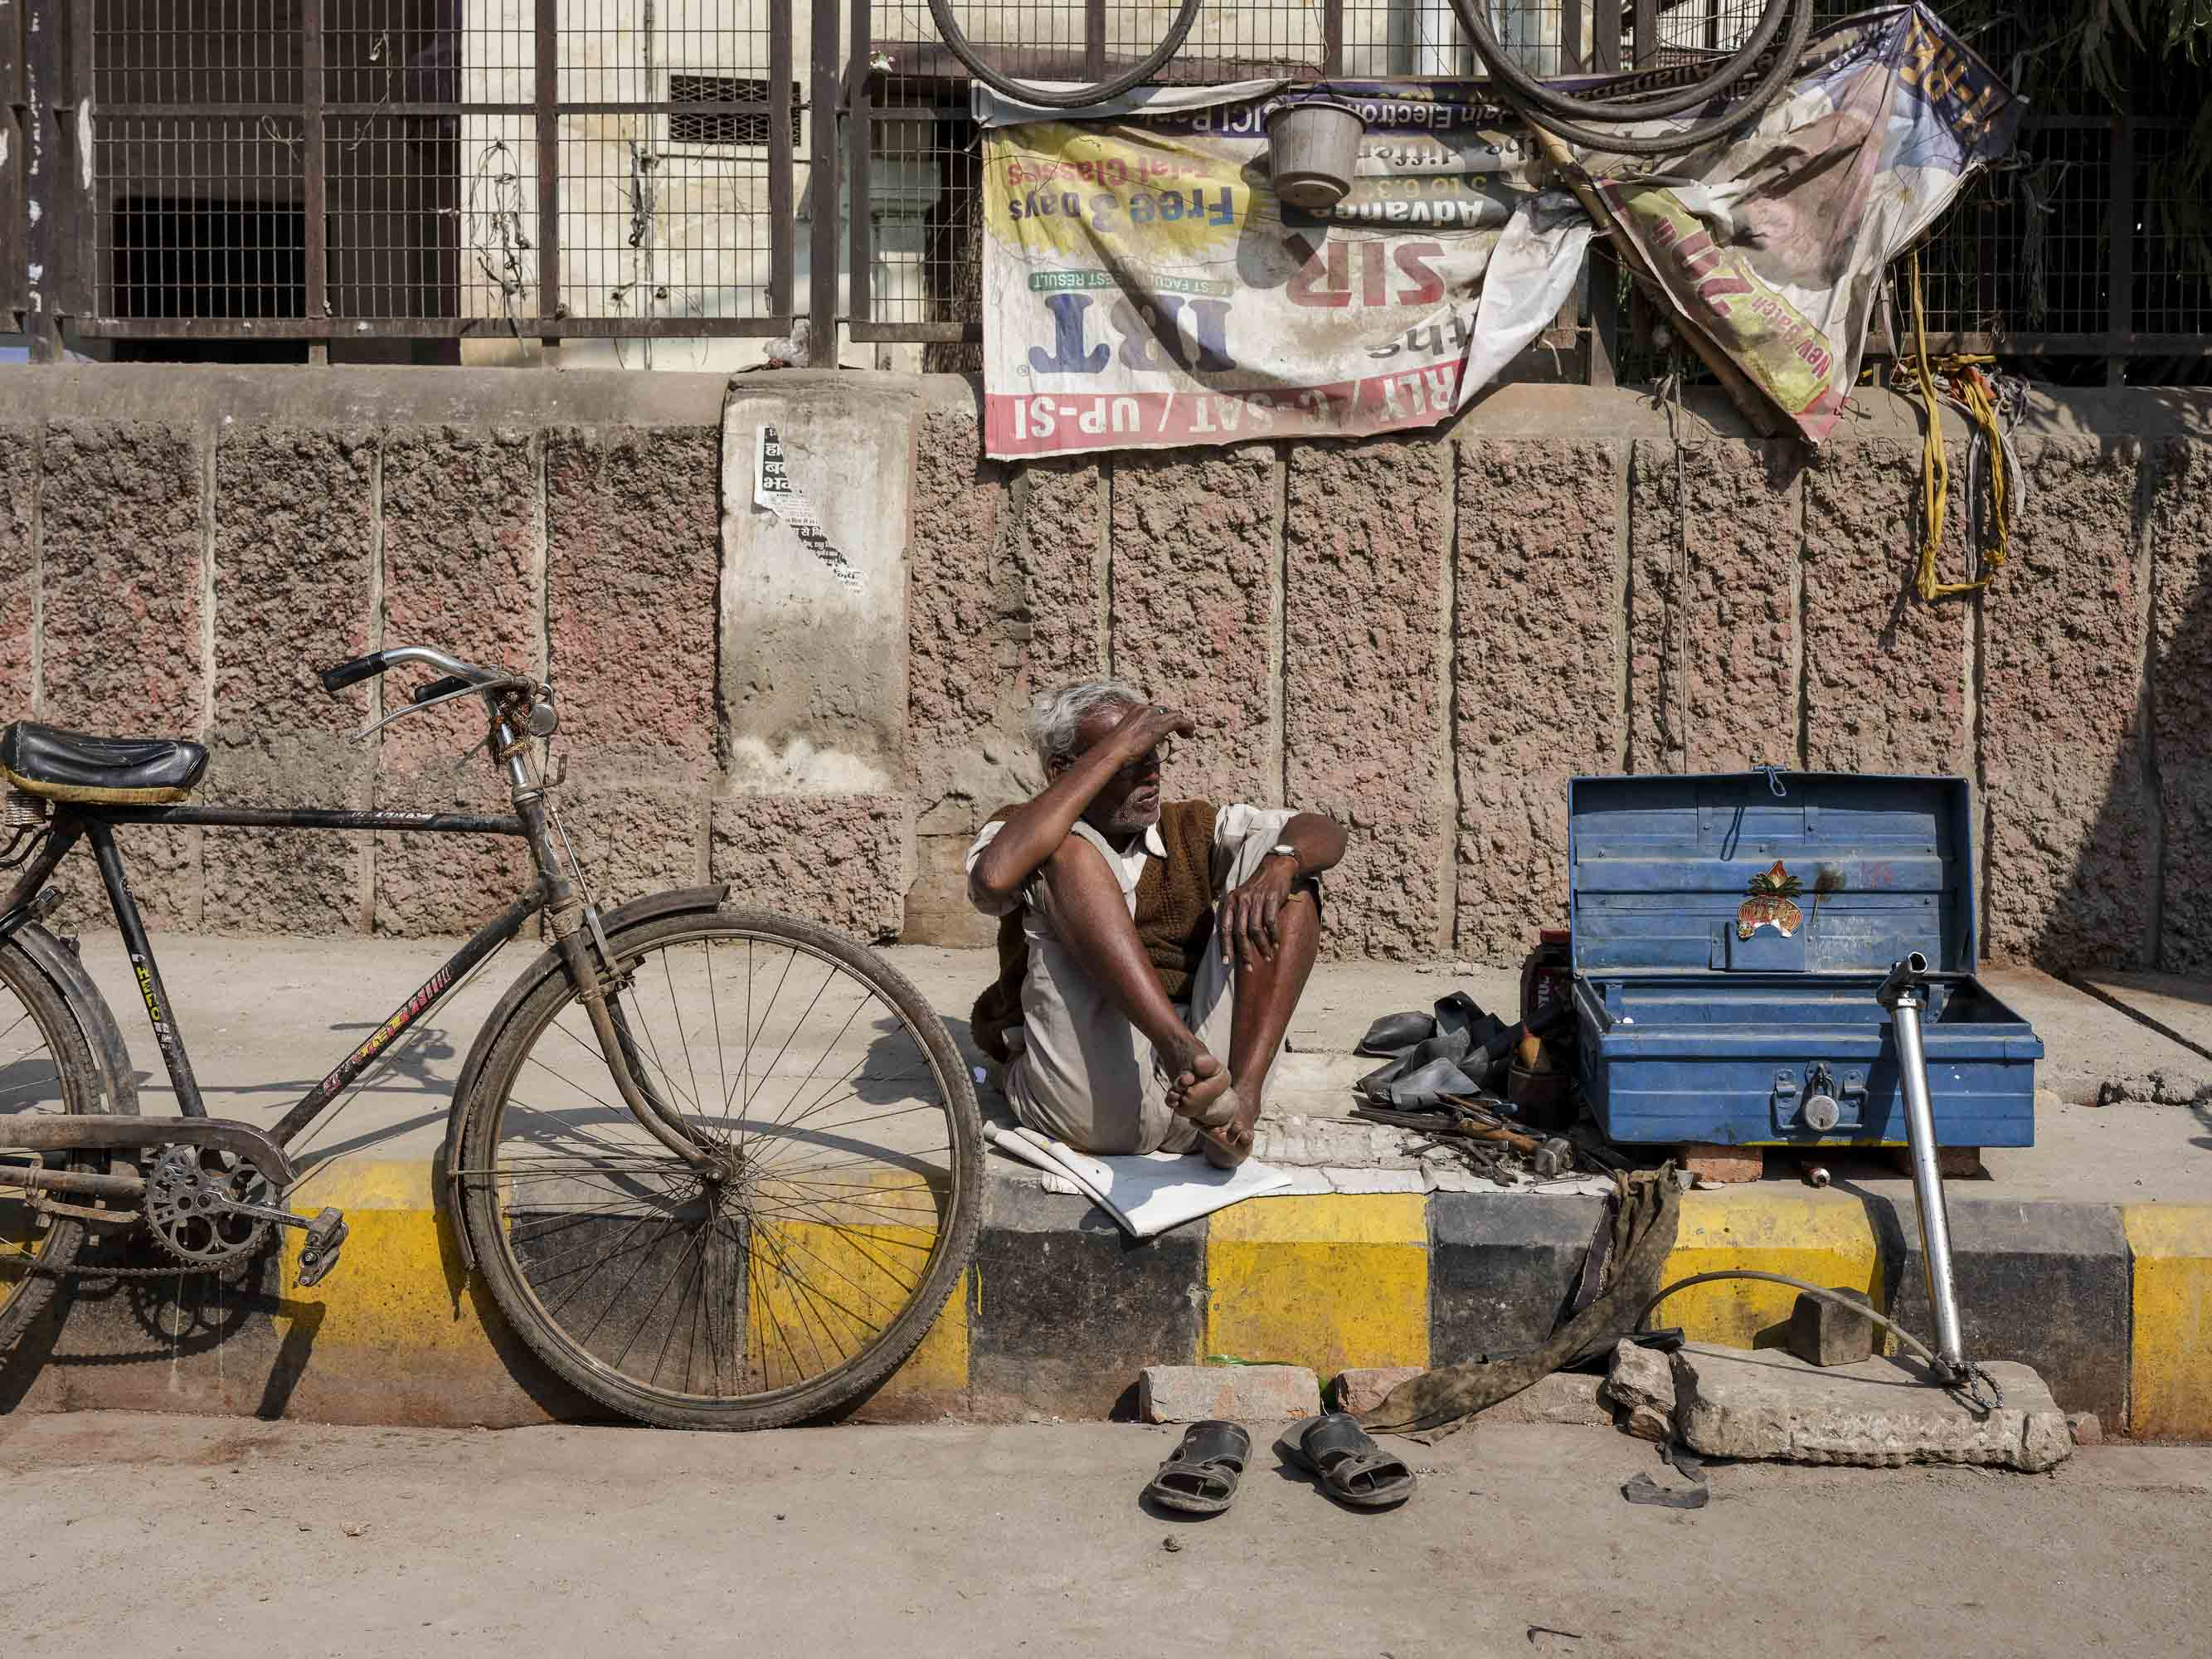 repair bike city pilgrims Kumbh mela 2019 India Allahabad Prayagraj Ardh hindu religious Festival event rivers photographer jose jeuland photography